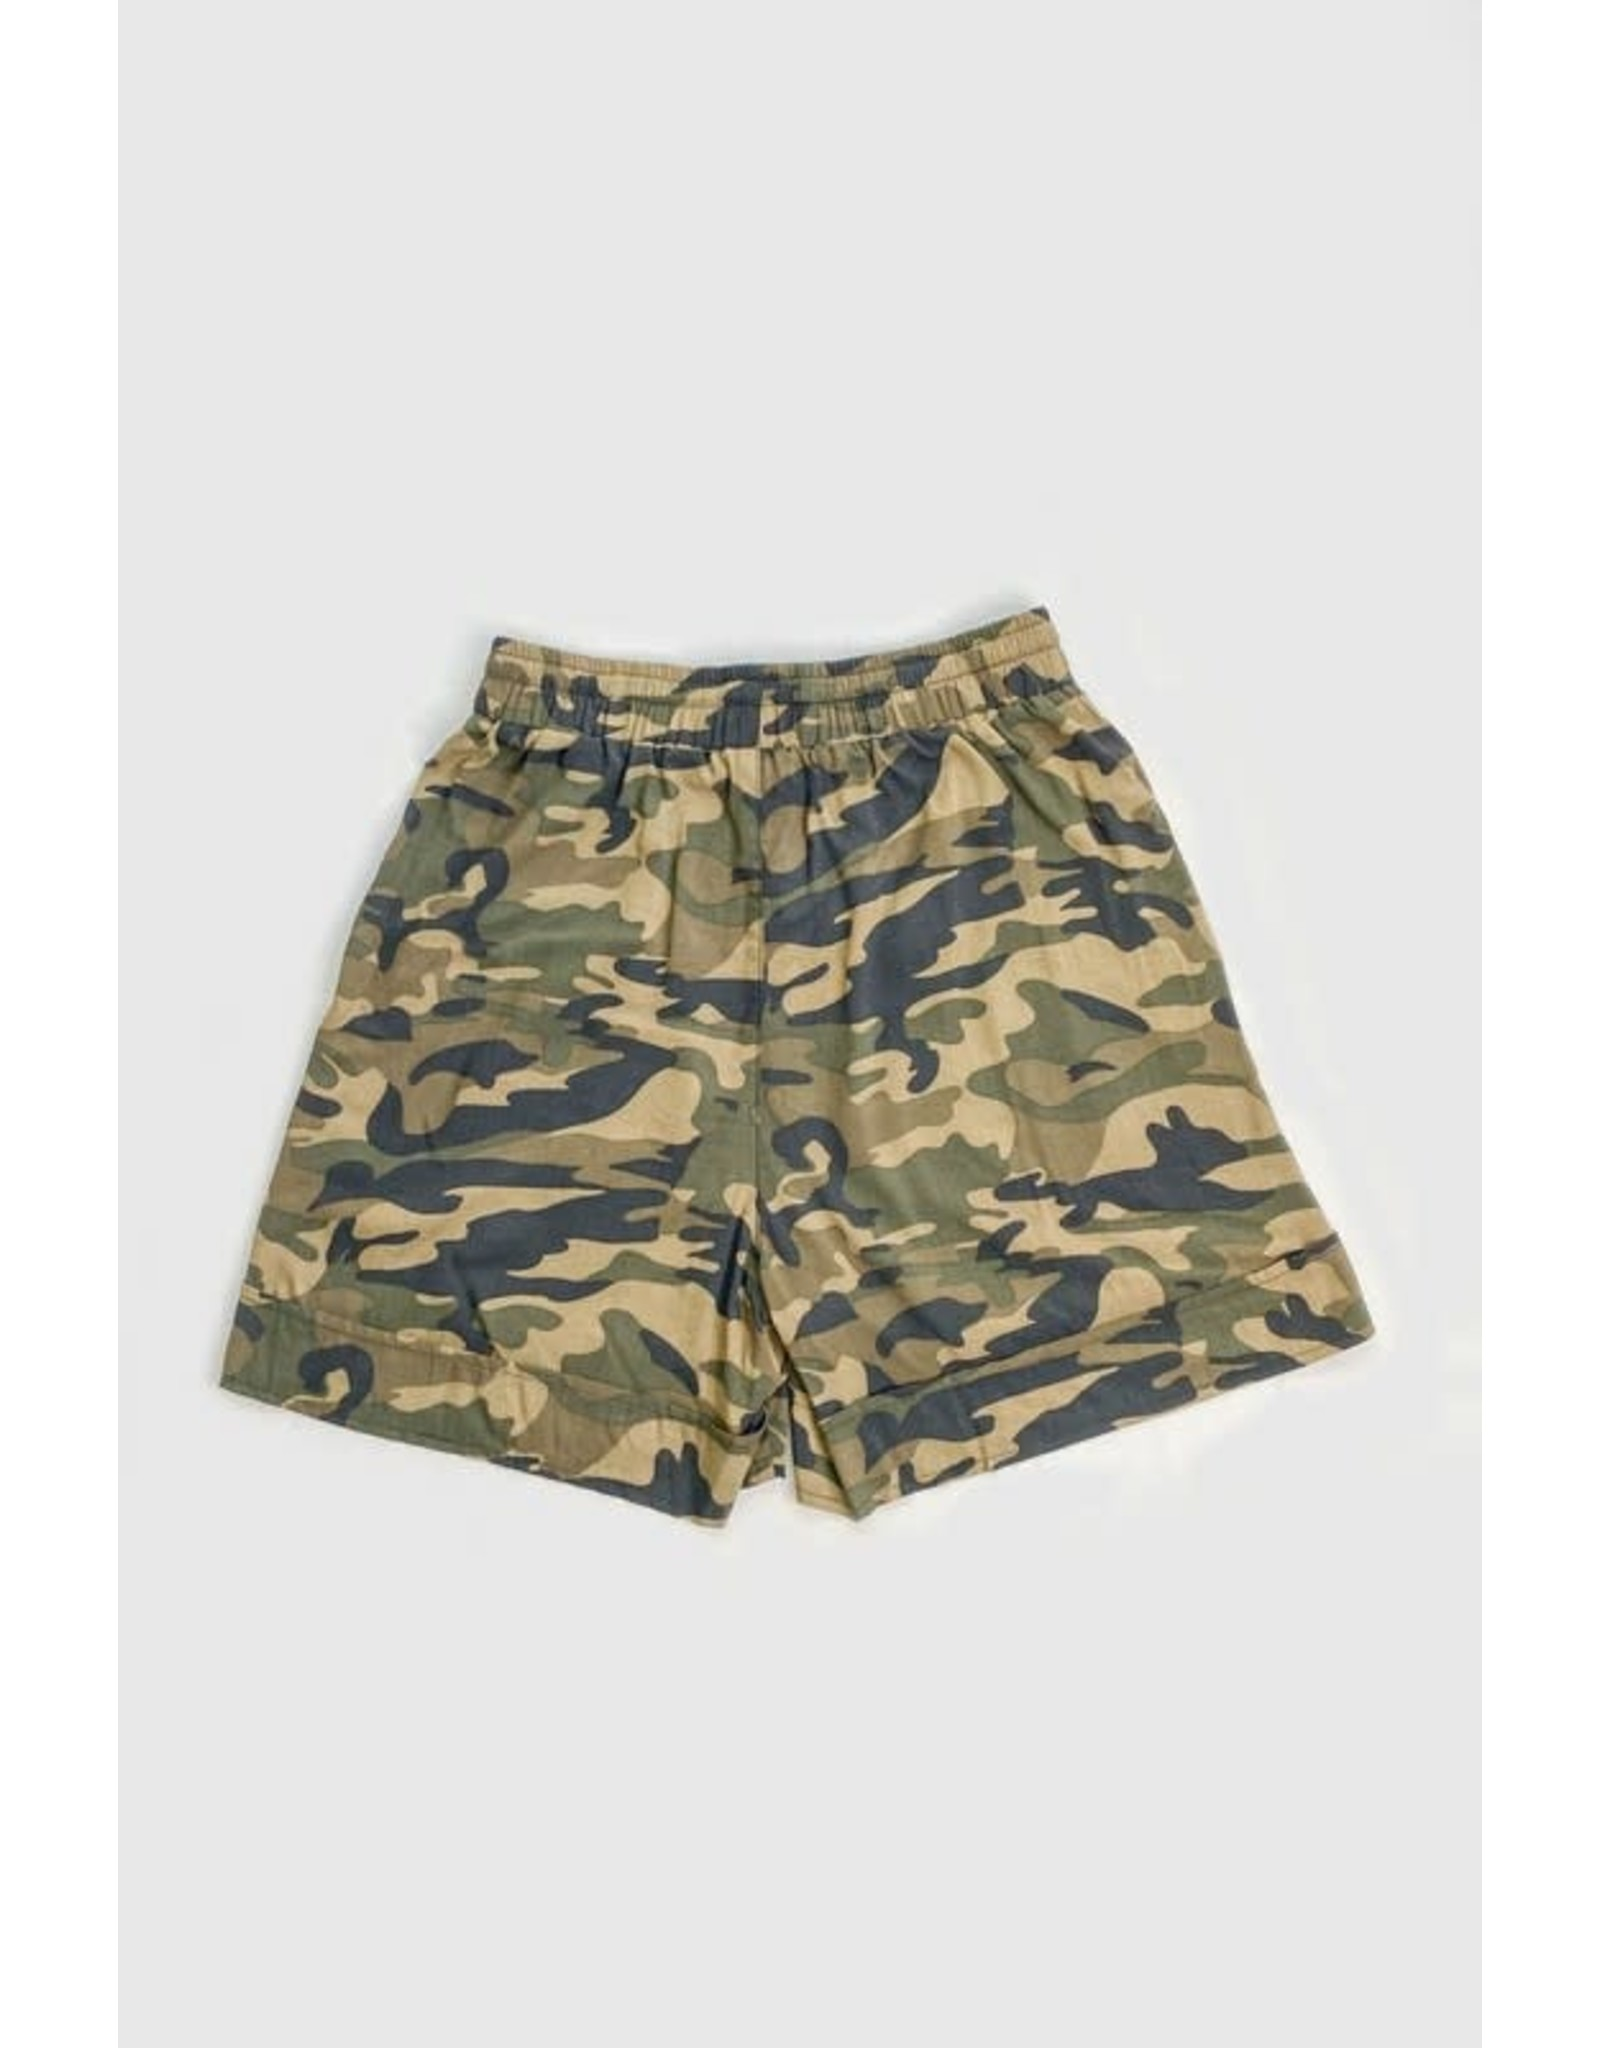 AND THE WHY SOFT WOVEN CAMO SHORTS WITH SIDE POCKETS